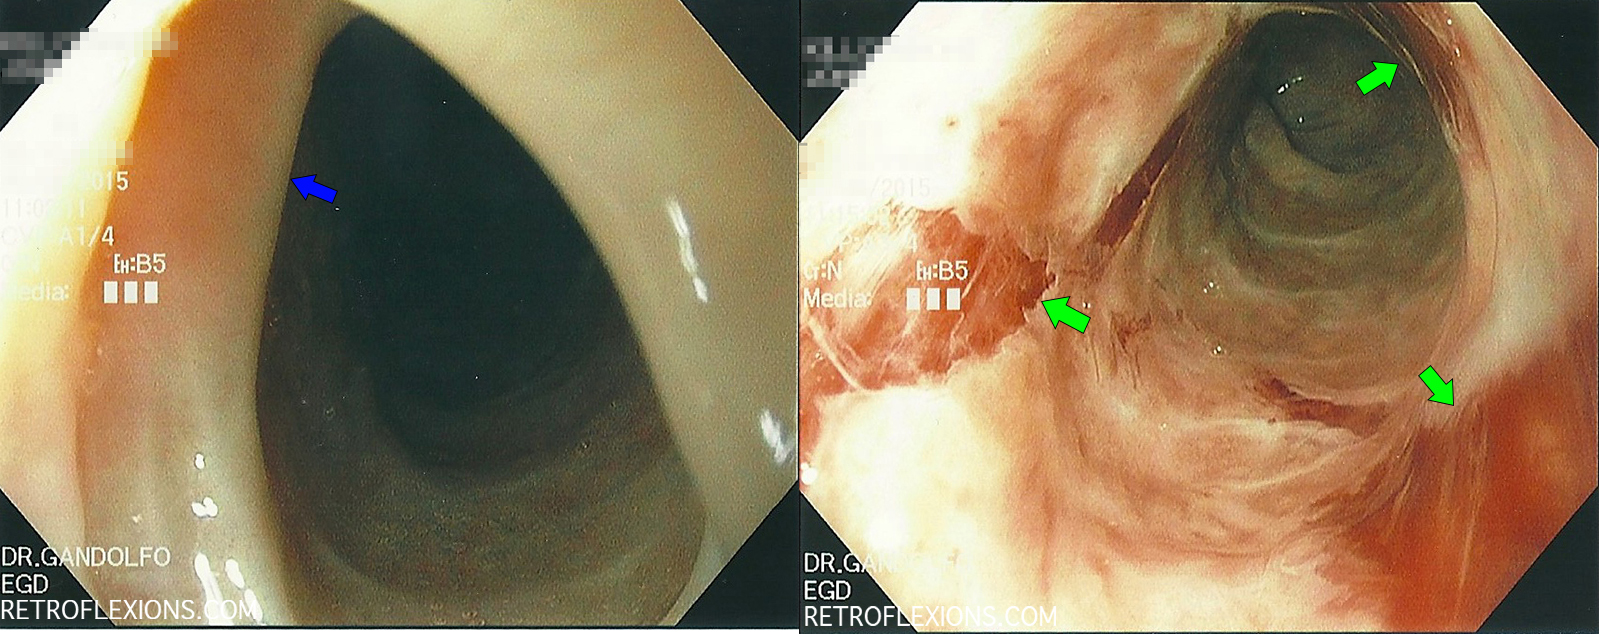 (L): tight stricture (blue arrow) would not let scope pass; (R): after dilation multiple large mucosal tears are seen (green arrows). Bleeding is self-limited and minor.